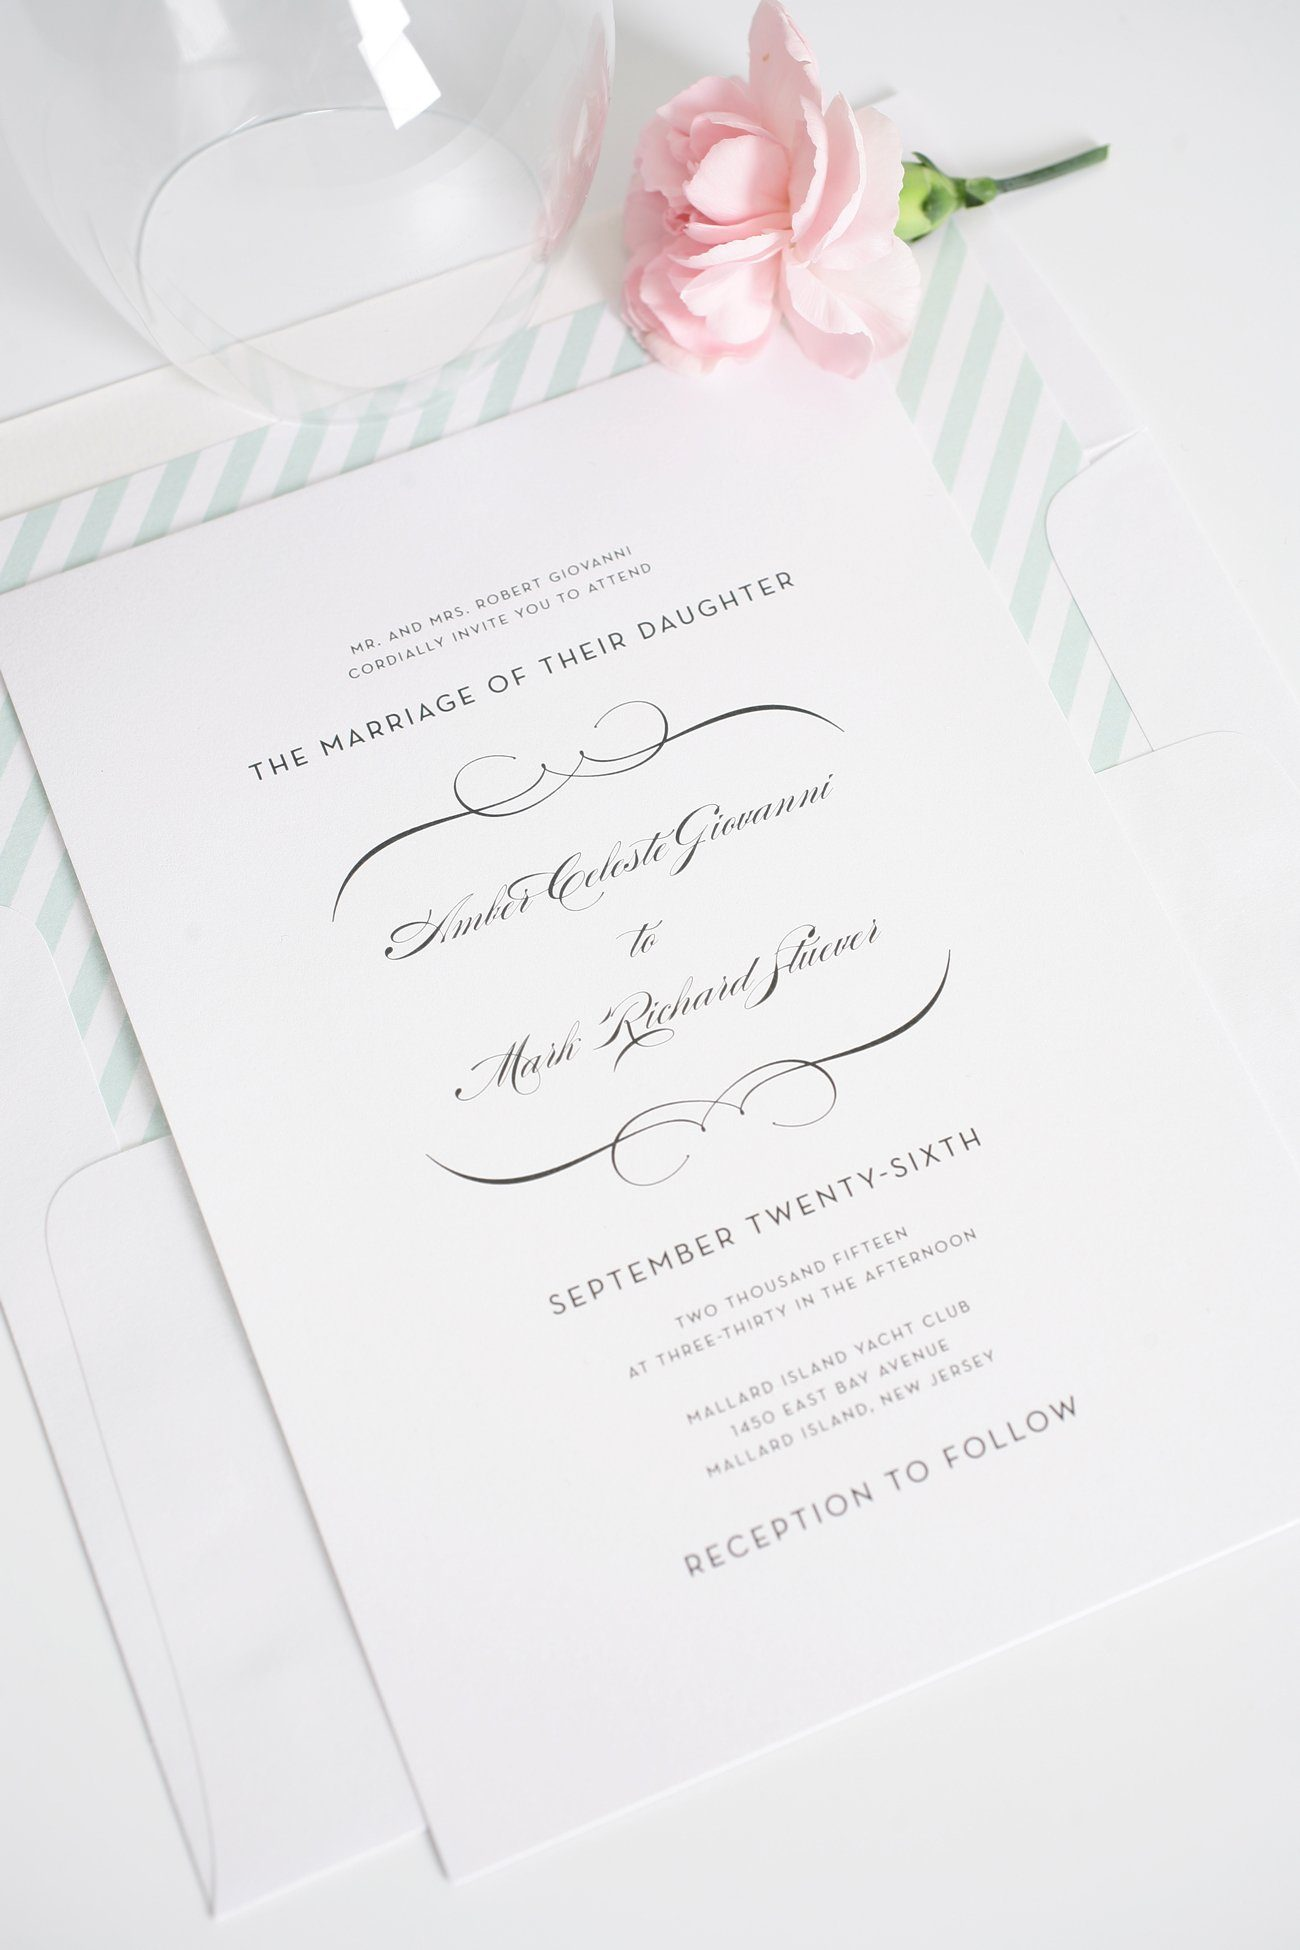 French wedding invitations with mint accents